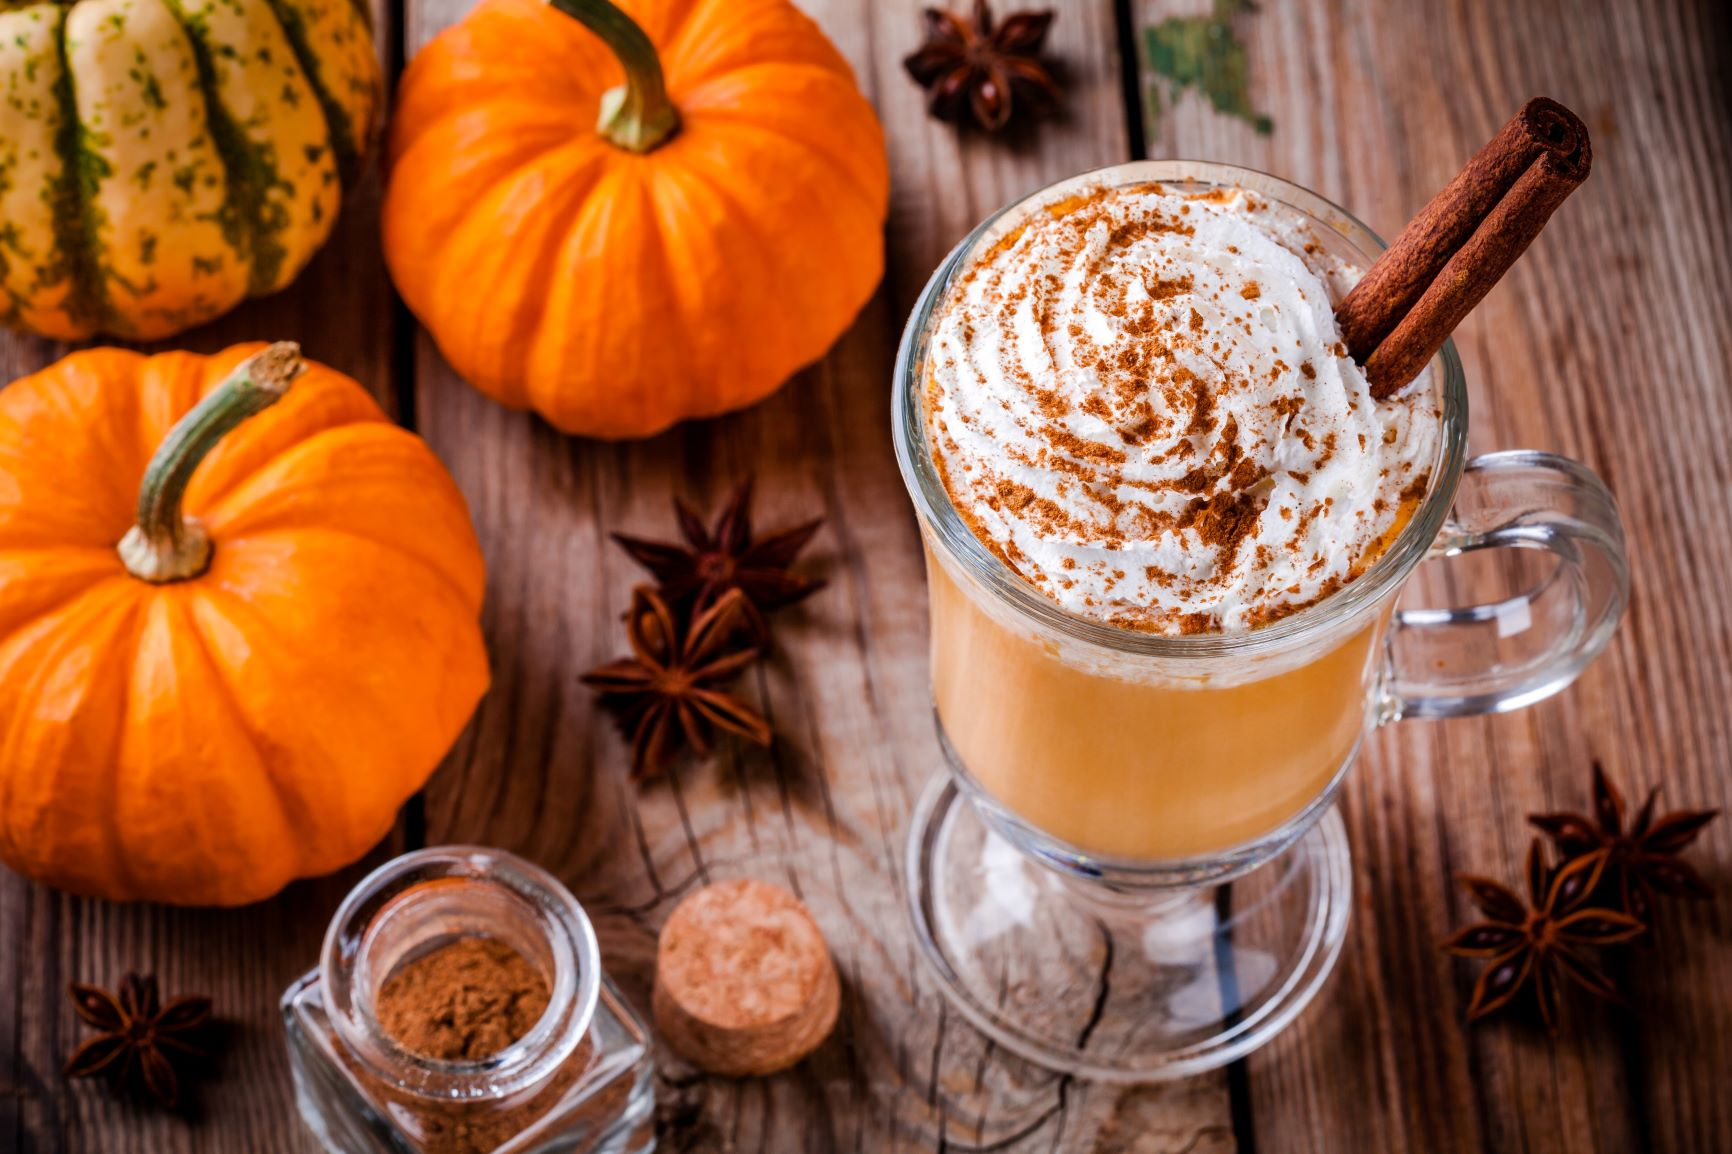 Fun ideas to spice up your October marketing